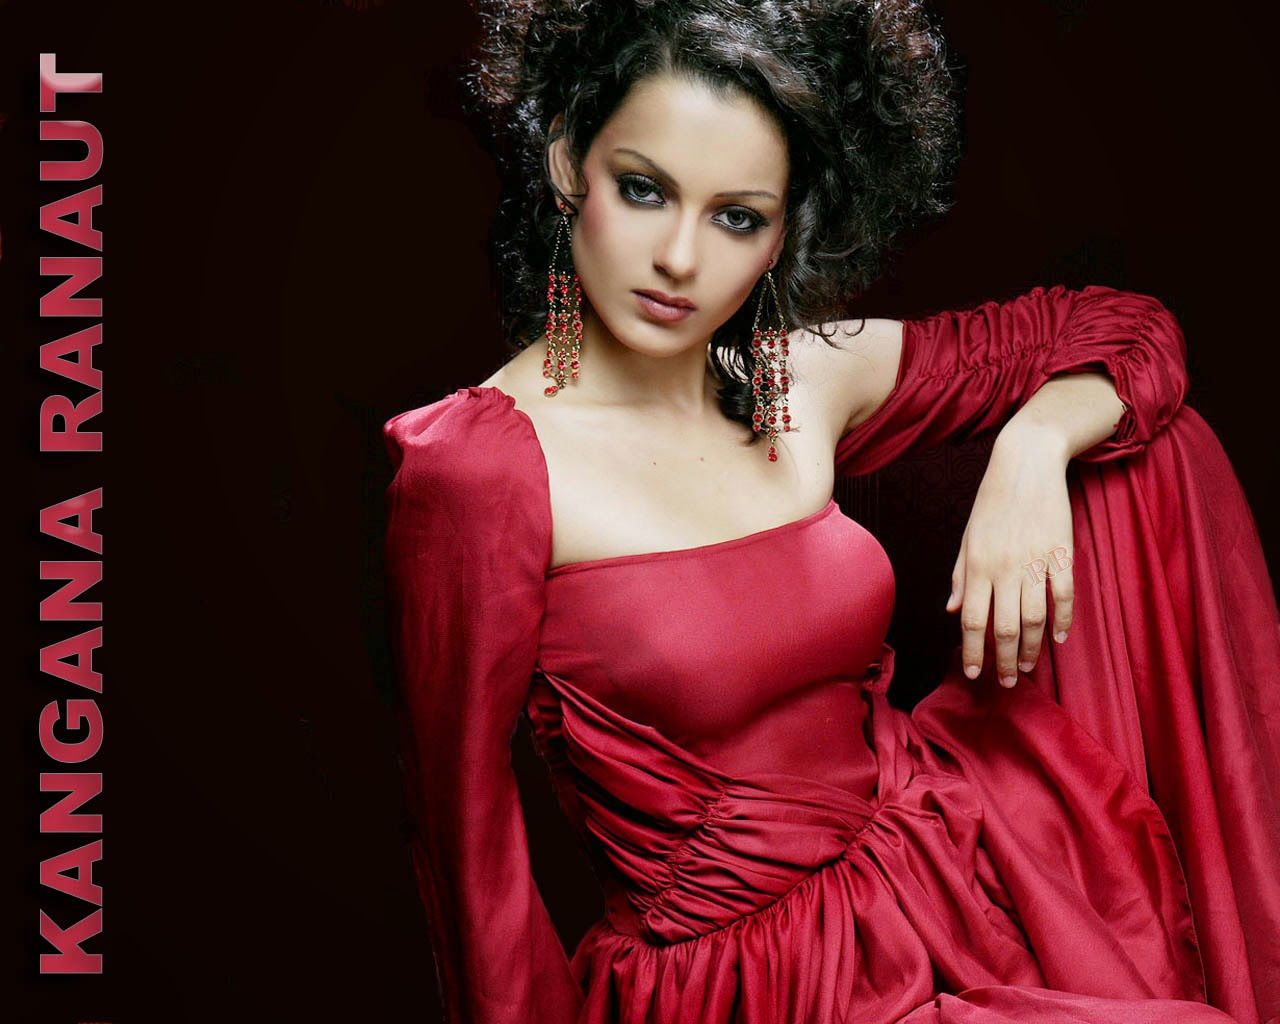 Kangana ranaut hot sexy in red dress hd free nice wallpaper